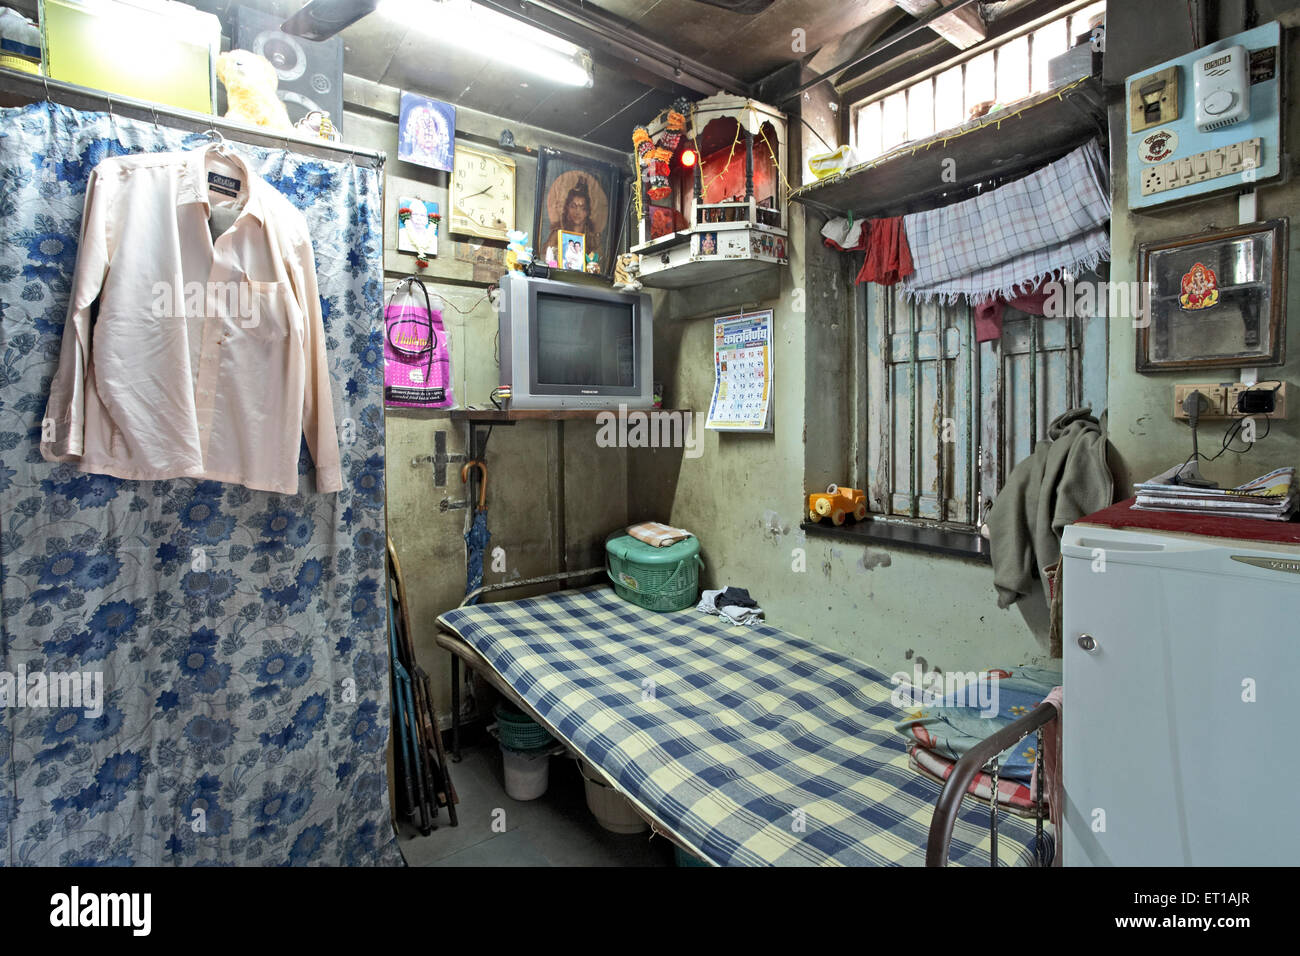 One room house textile mill chawl mumbai india asia stock for One room home